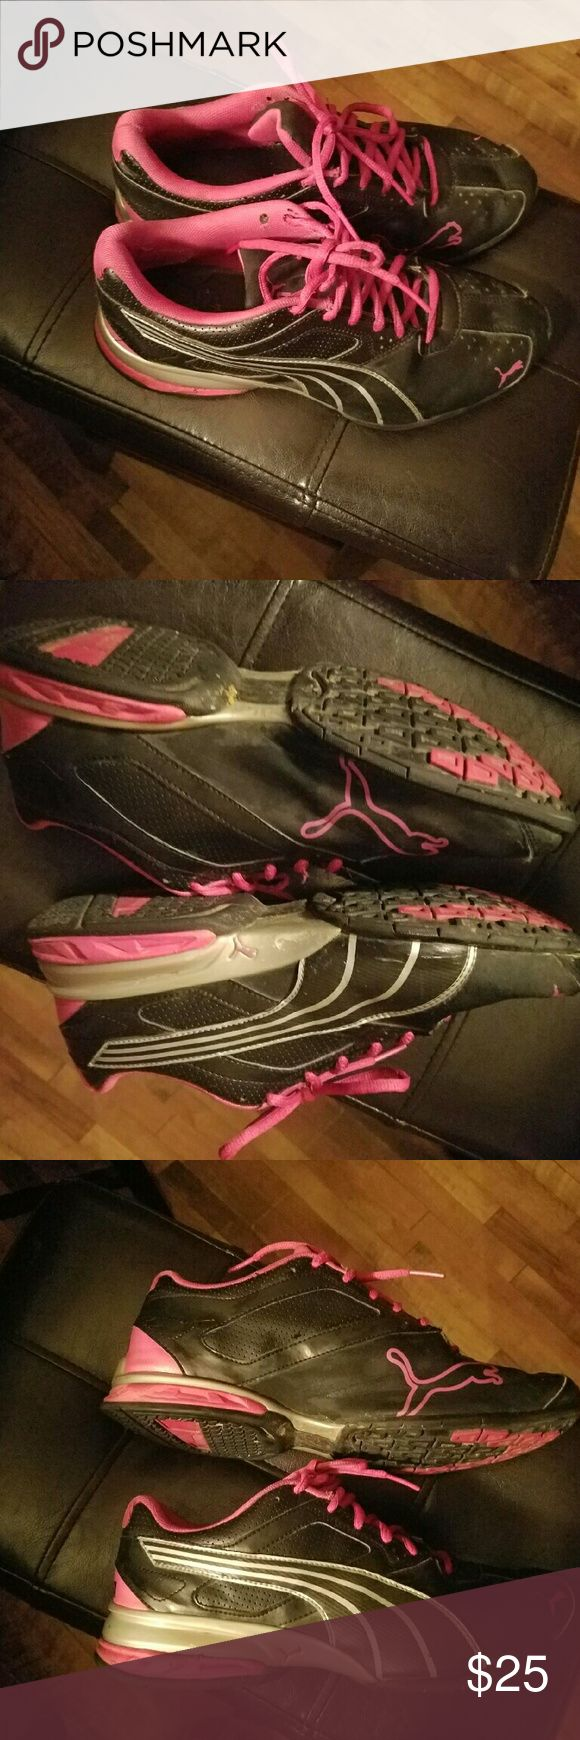 Women's Puma Tennis Shoes Used women's tennis shoes. Has some wear as shown in pictures but still in good condition. I didn't wear much because I don't like to wear tennis shoes. Puma Shoes Sneakers